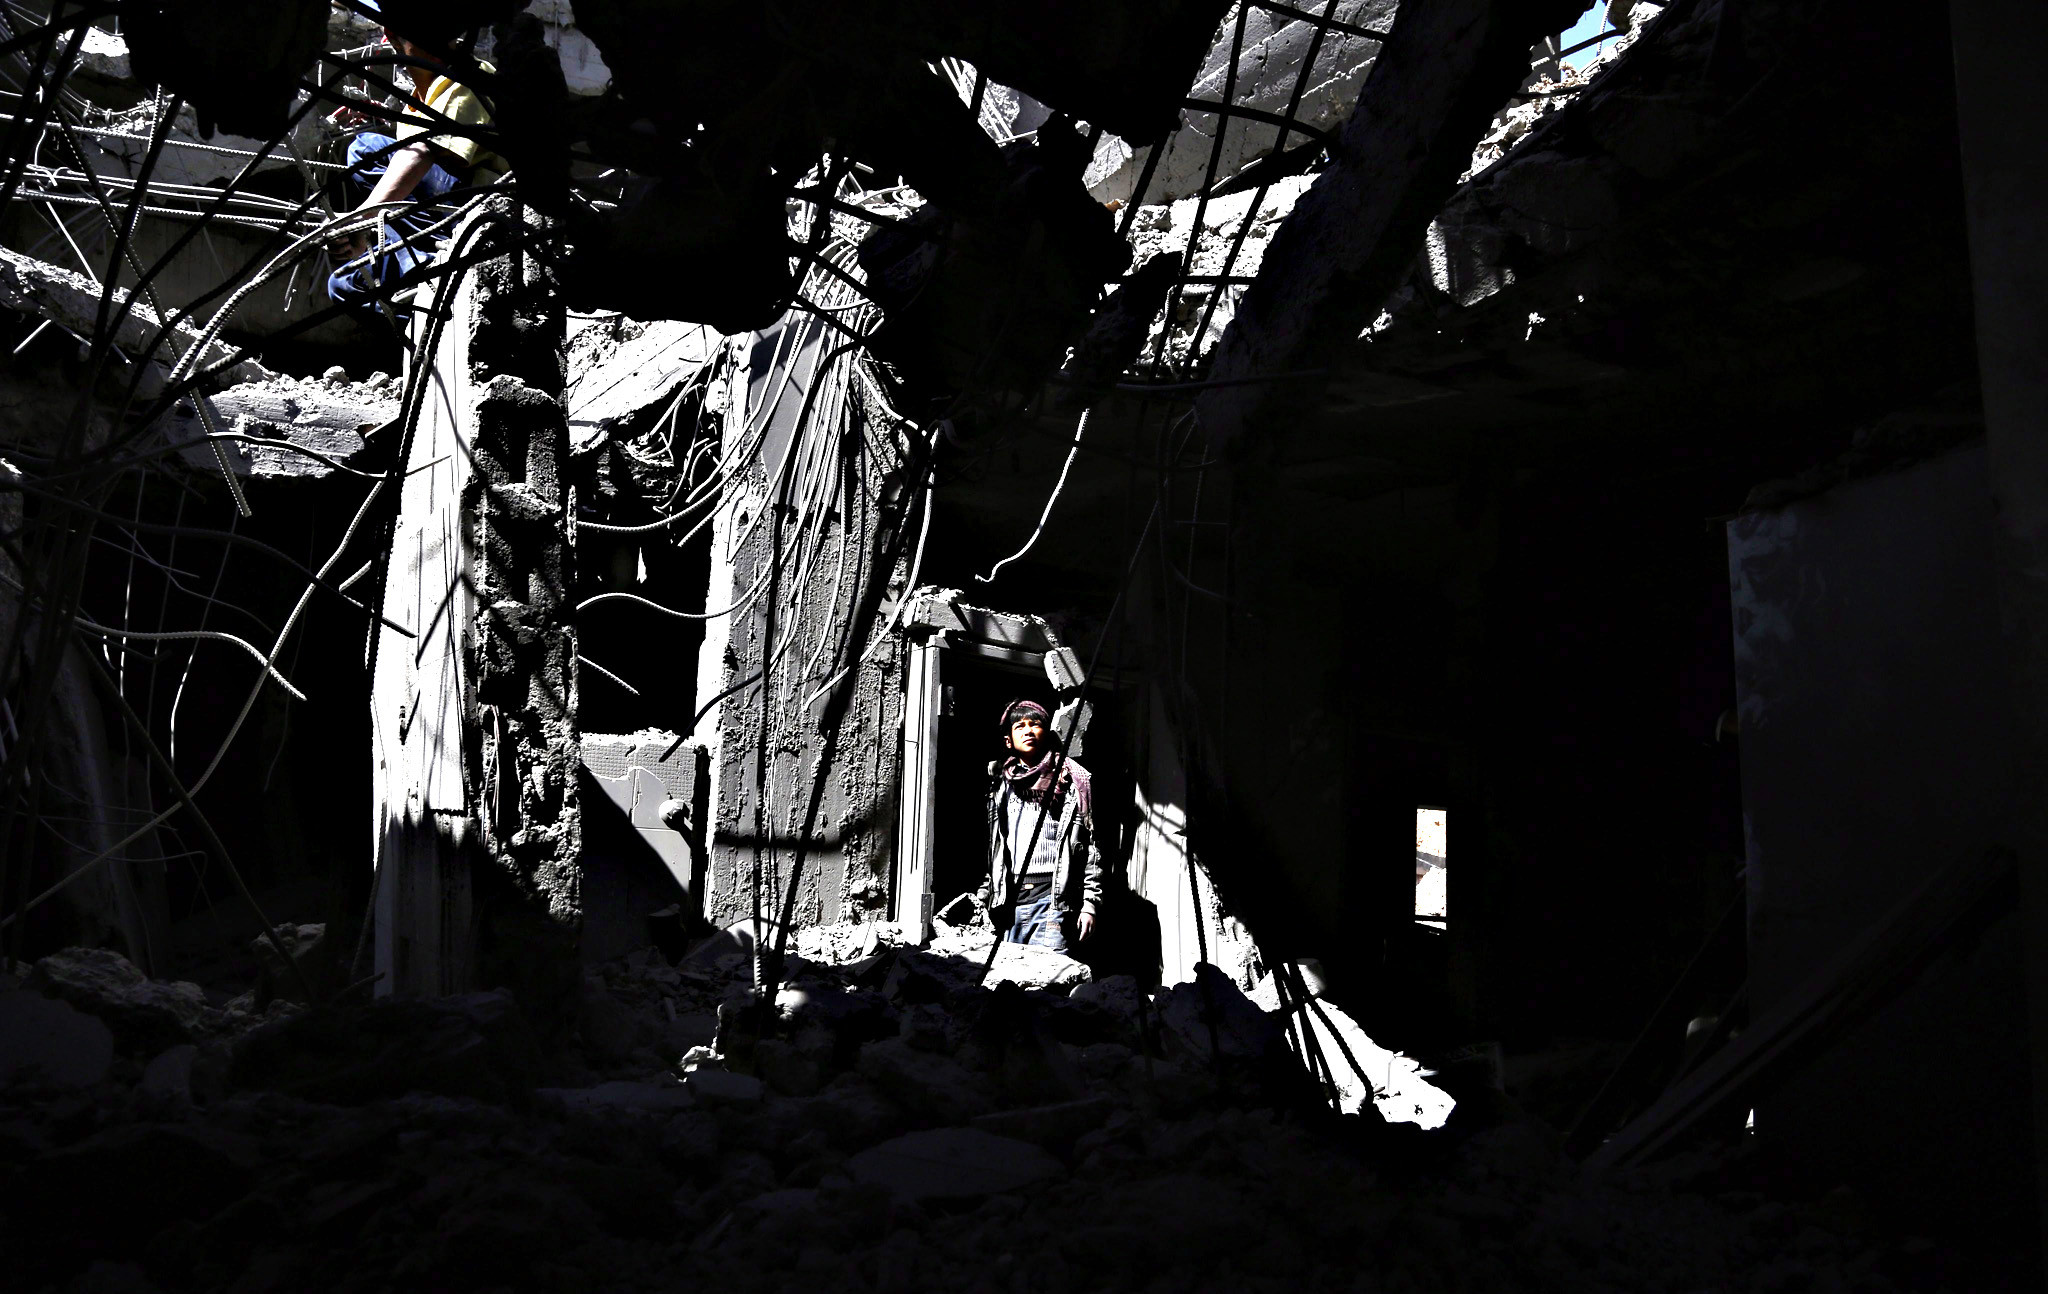 A Yemeni inspects his family's apartment destroyed by airstrikes allegedly carried out by the Saudi-led coalition targeting a neighborhood in Sanaa, Yemen, 04 January 2016. The nine-month conflict in Yemen has escalated dramatically since the Saudi-led coalition started conducting airstrikes against the Houthi rebels in March, with more than 6000 people killed.